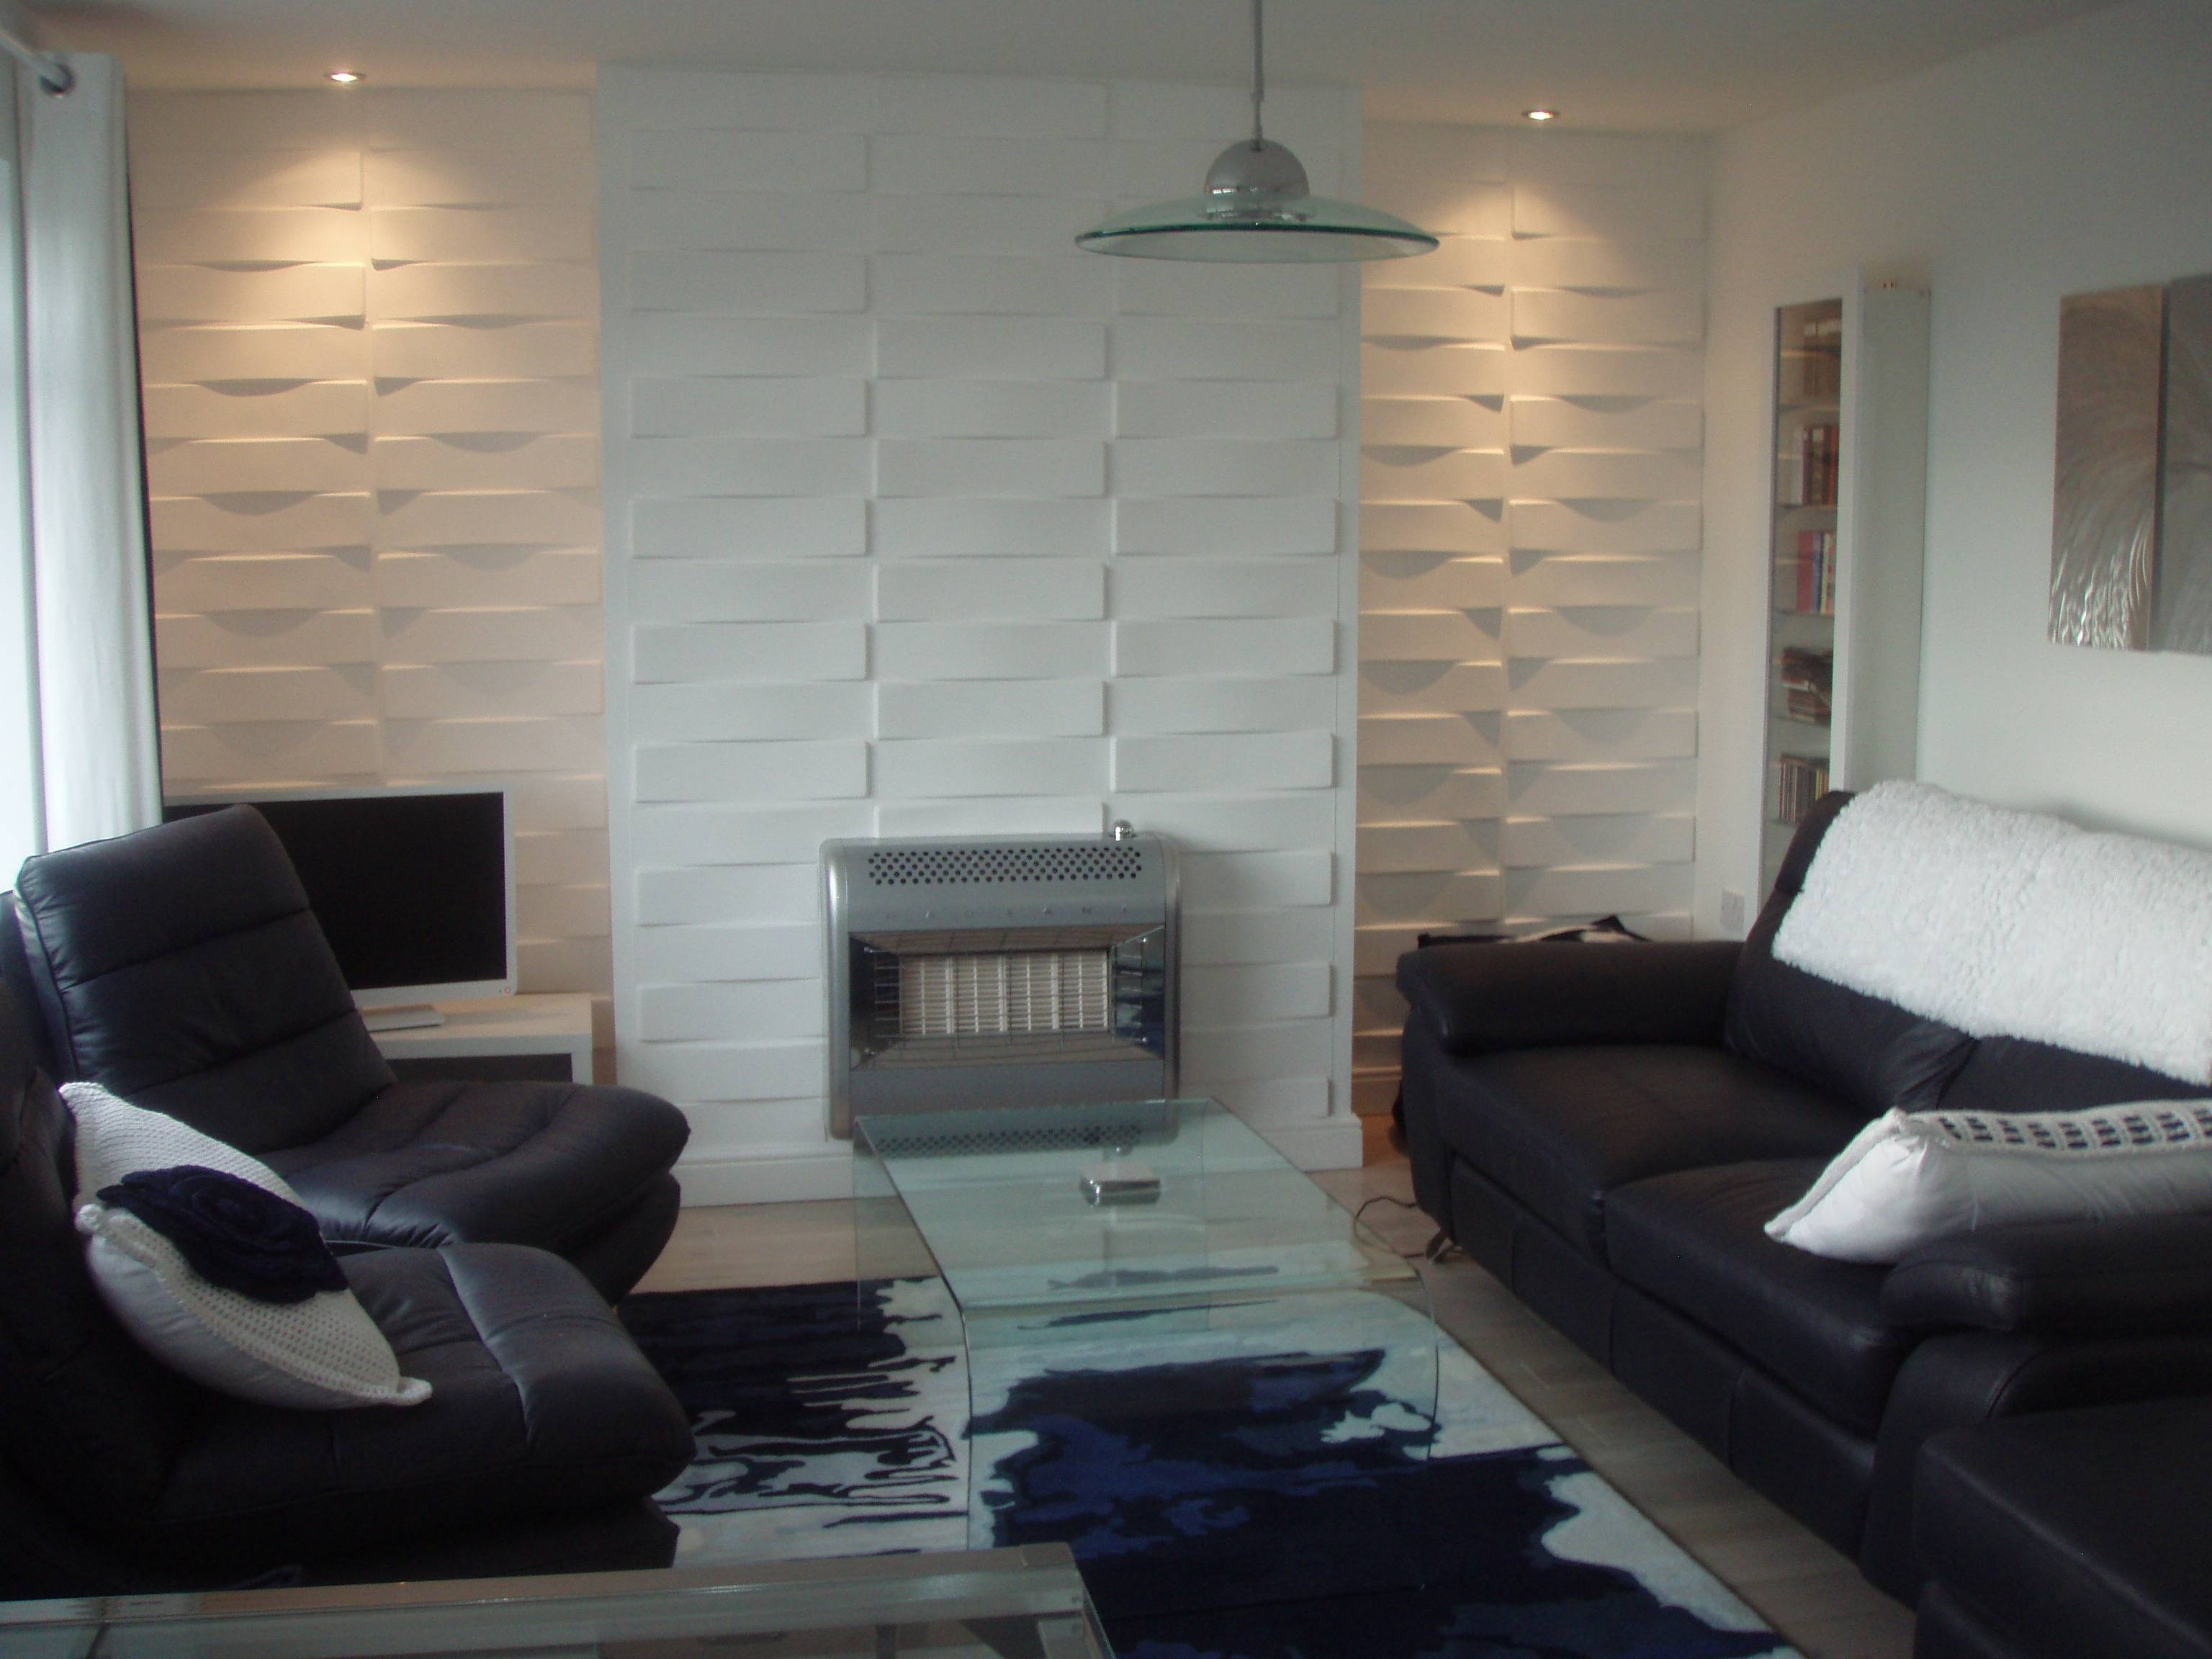 3d Wall Panels | Daisy Decorating & Design With Regard To Recent Painting 3d Wall Panels (Gallery 16 of 20)